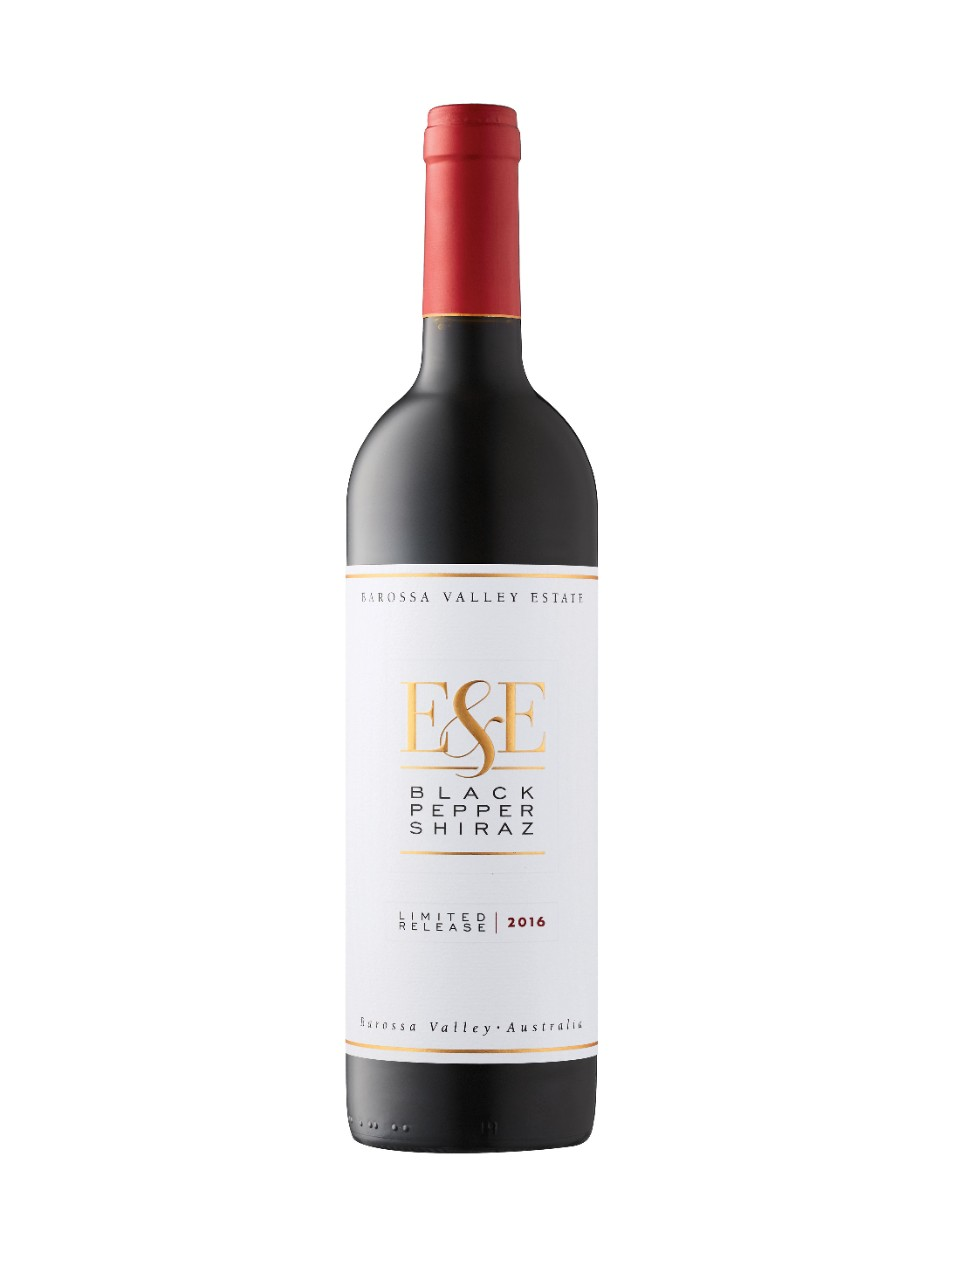 Shiraz E&E Black Pepper Barossa Valley Estate 2014